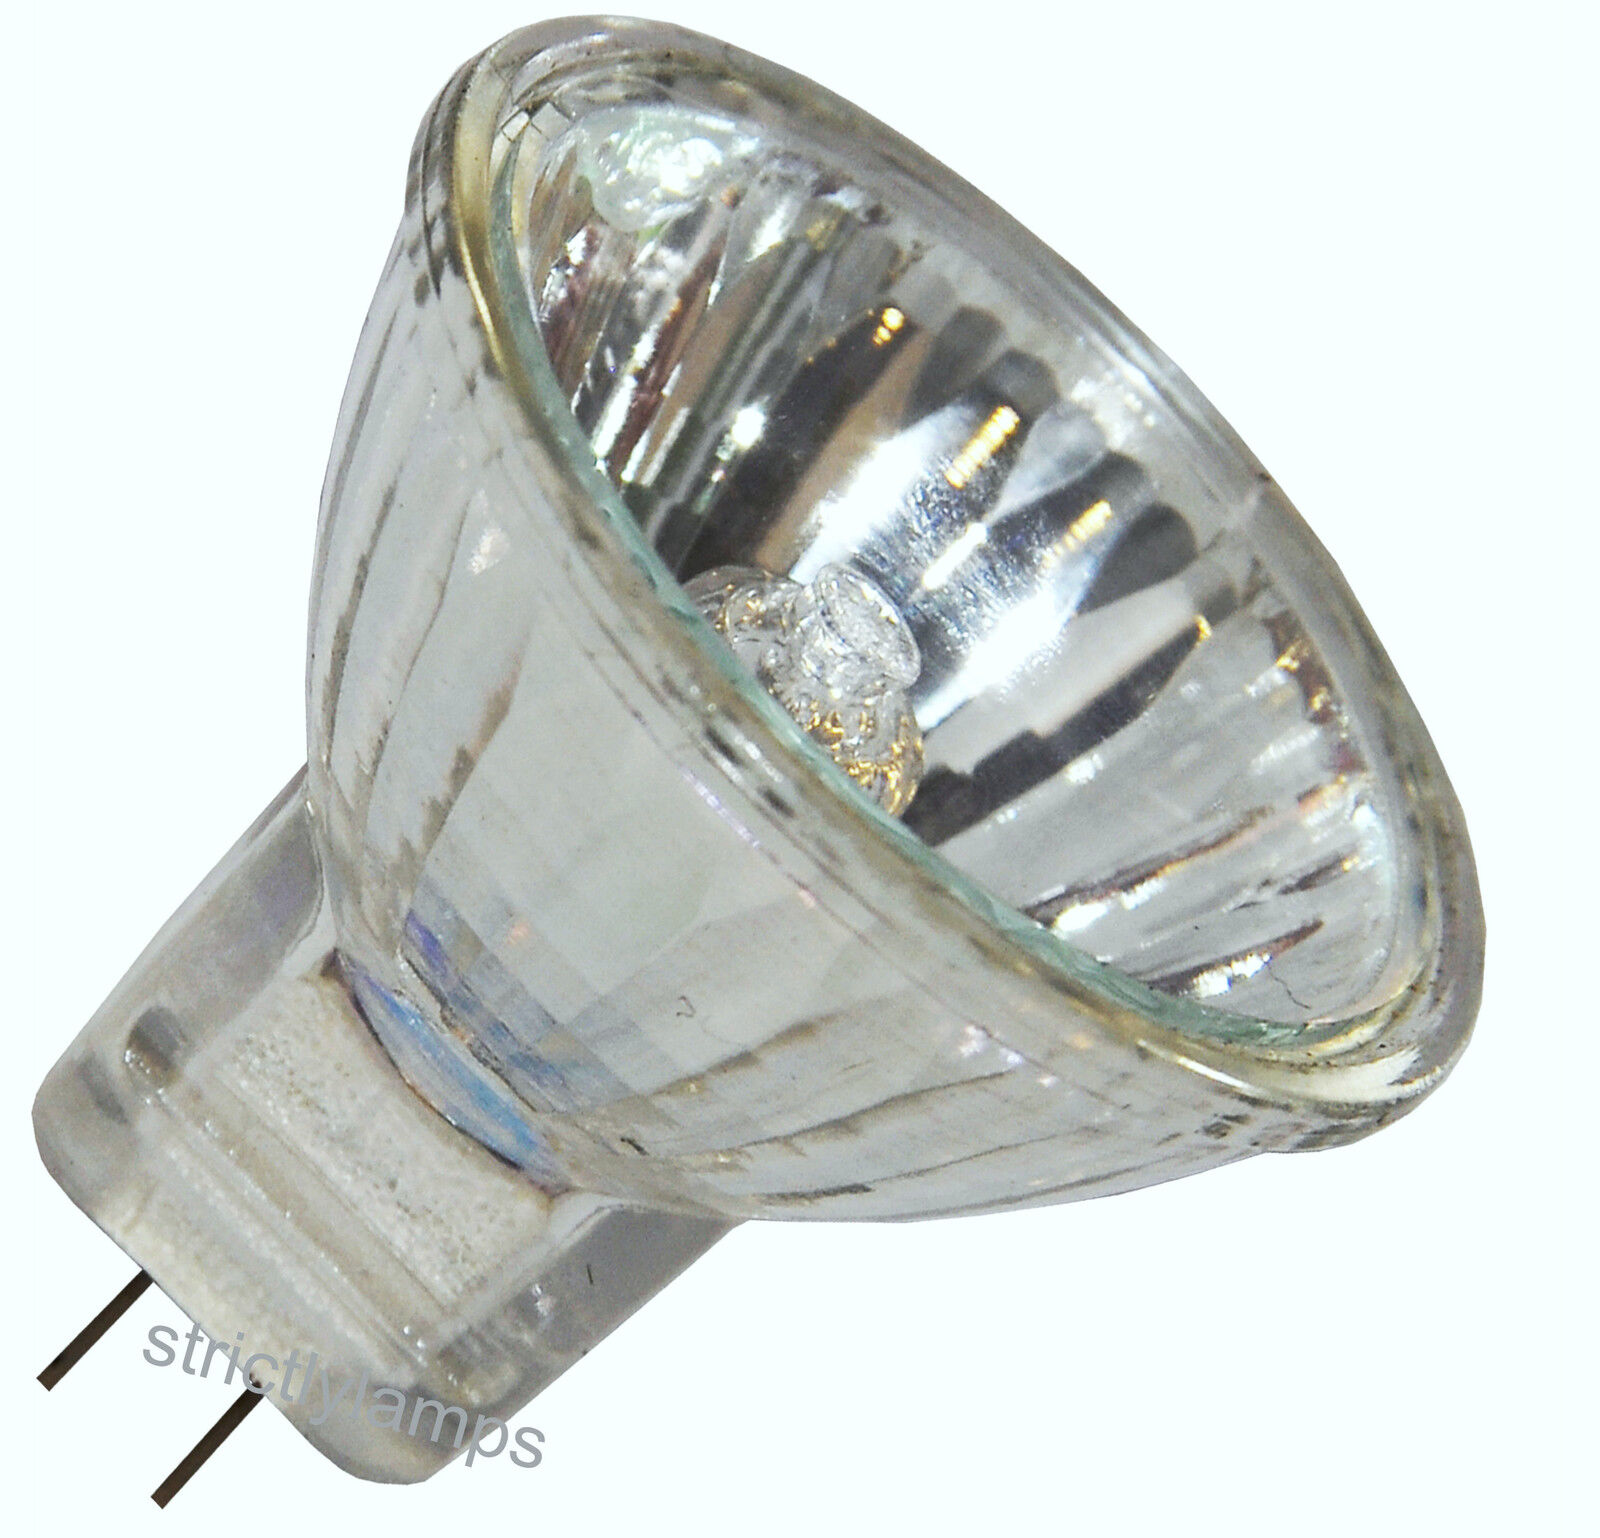 Halogen Bulbs Mr11 10w Halogen Light Bulbs Lamp 12v 10w Bulb Fibre Optic